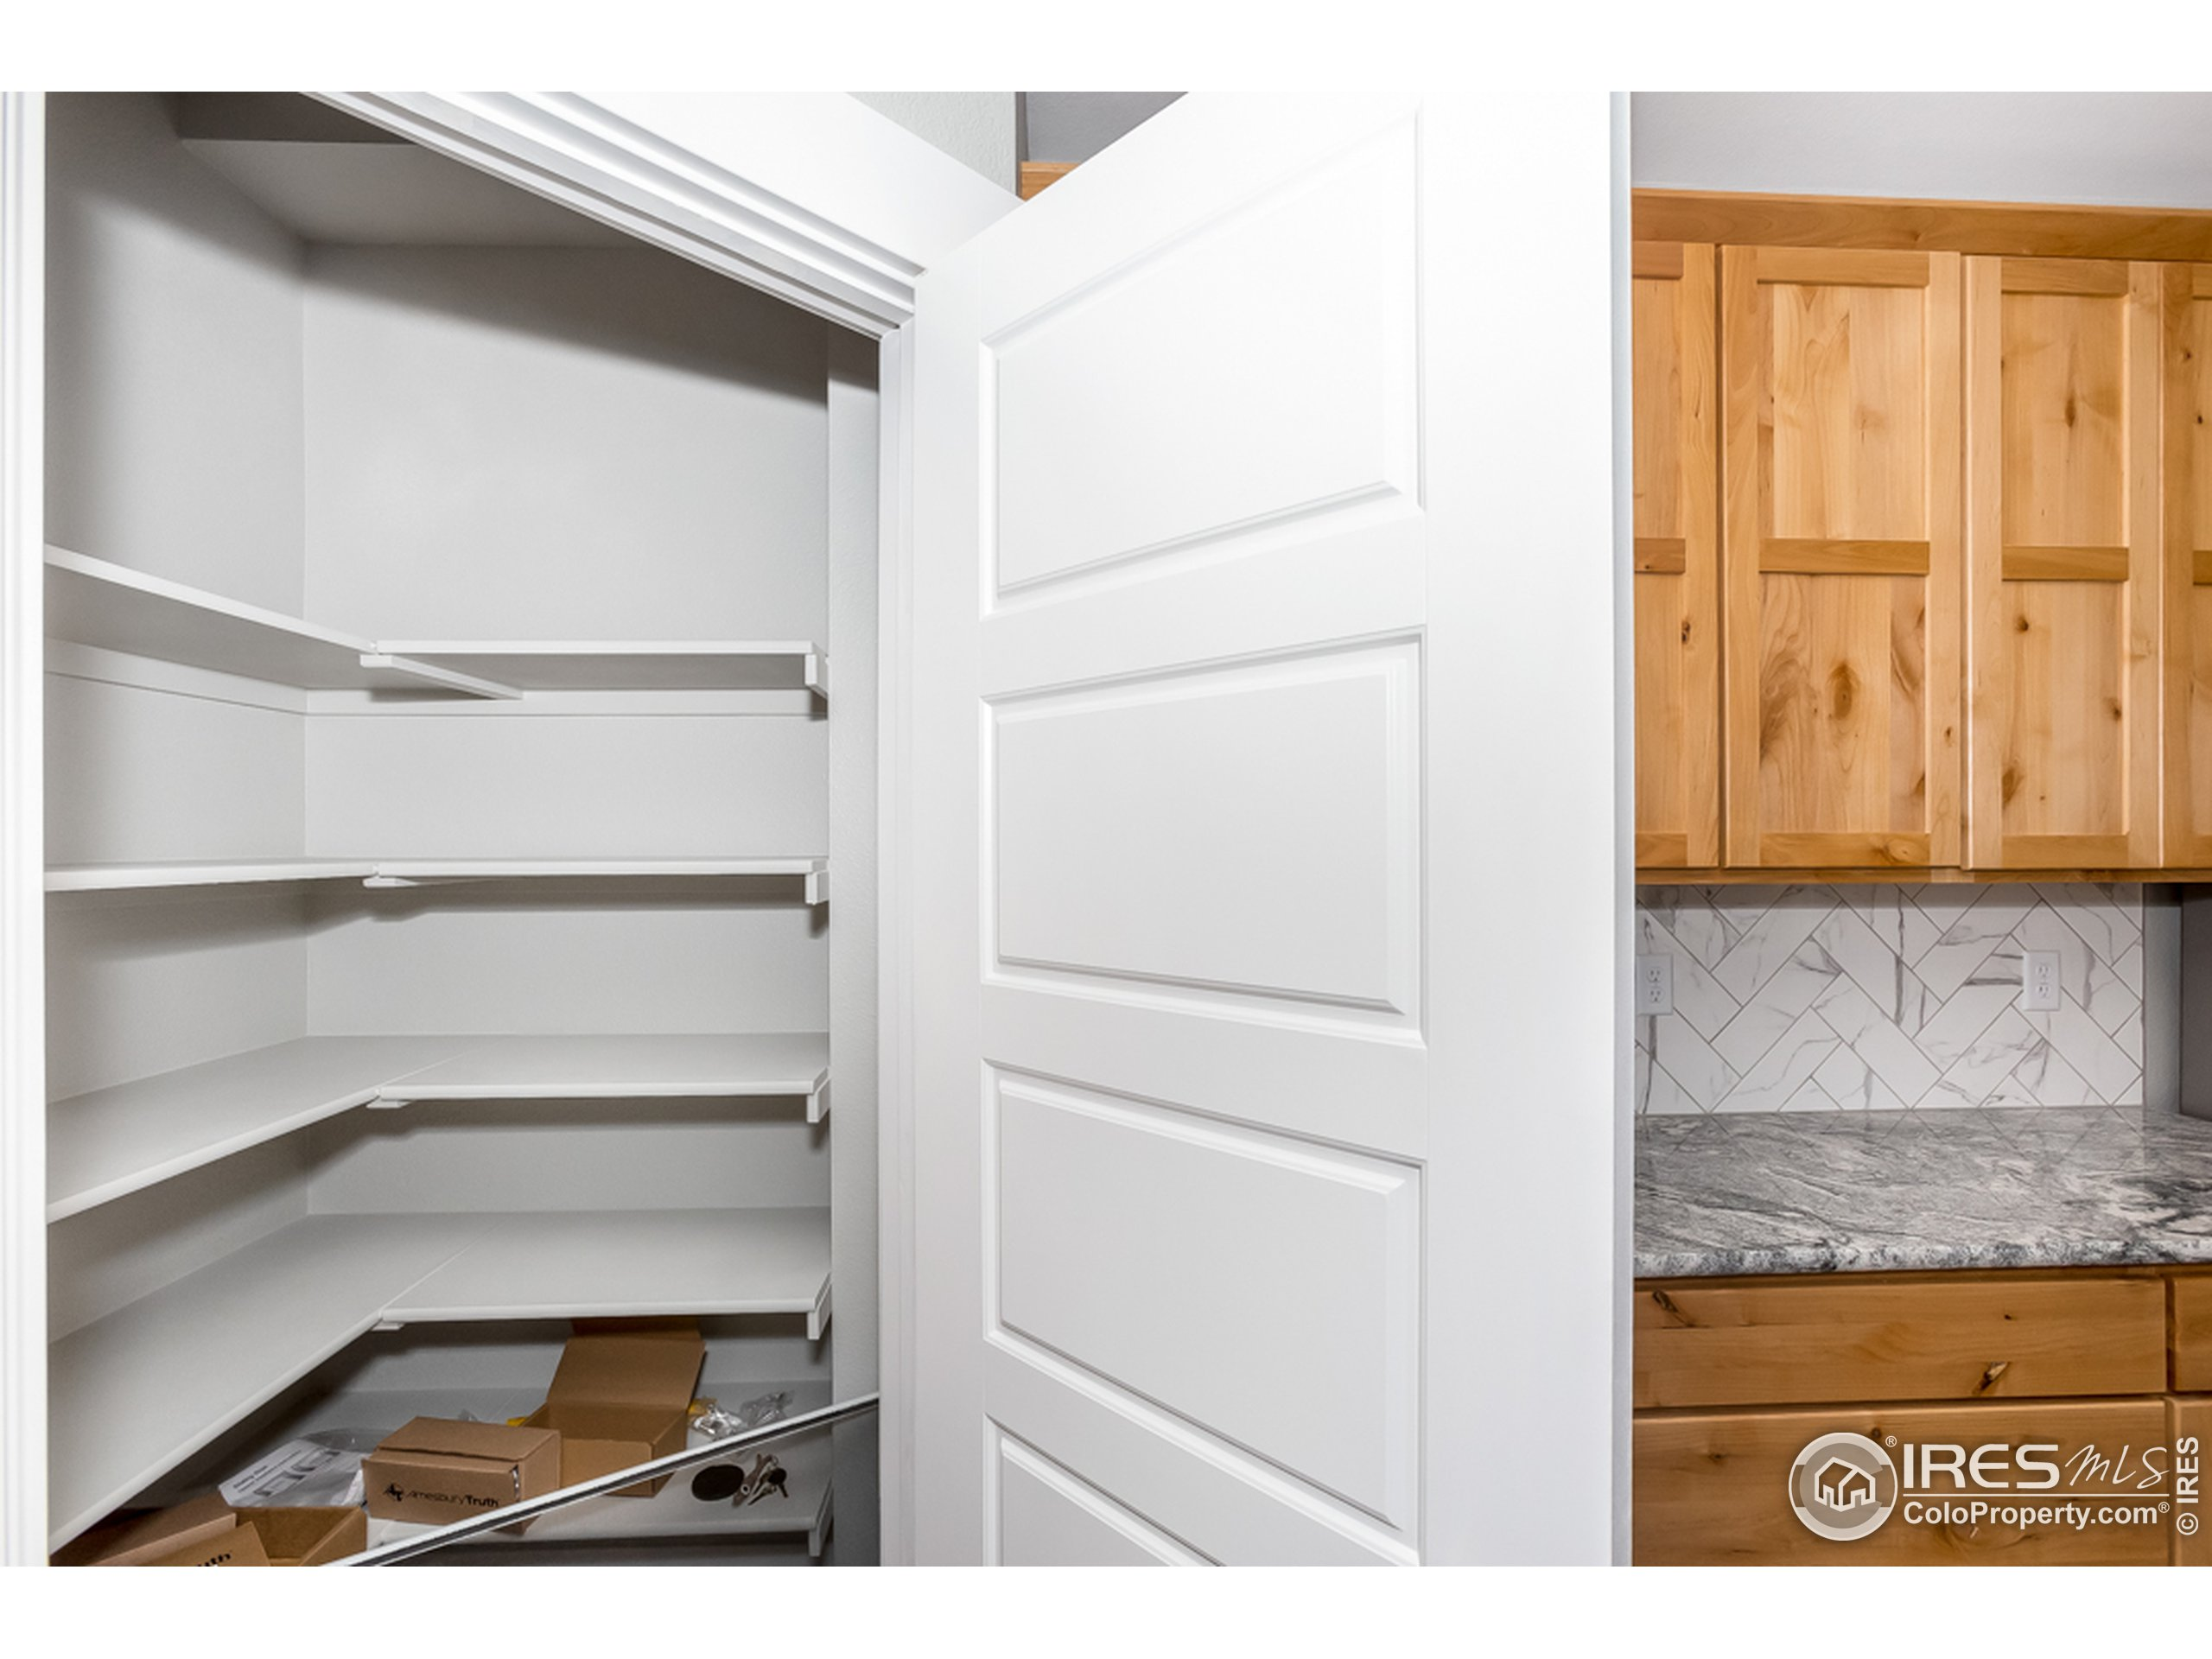 A large pantry for the kitchen